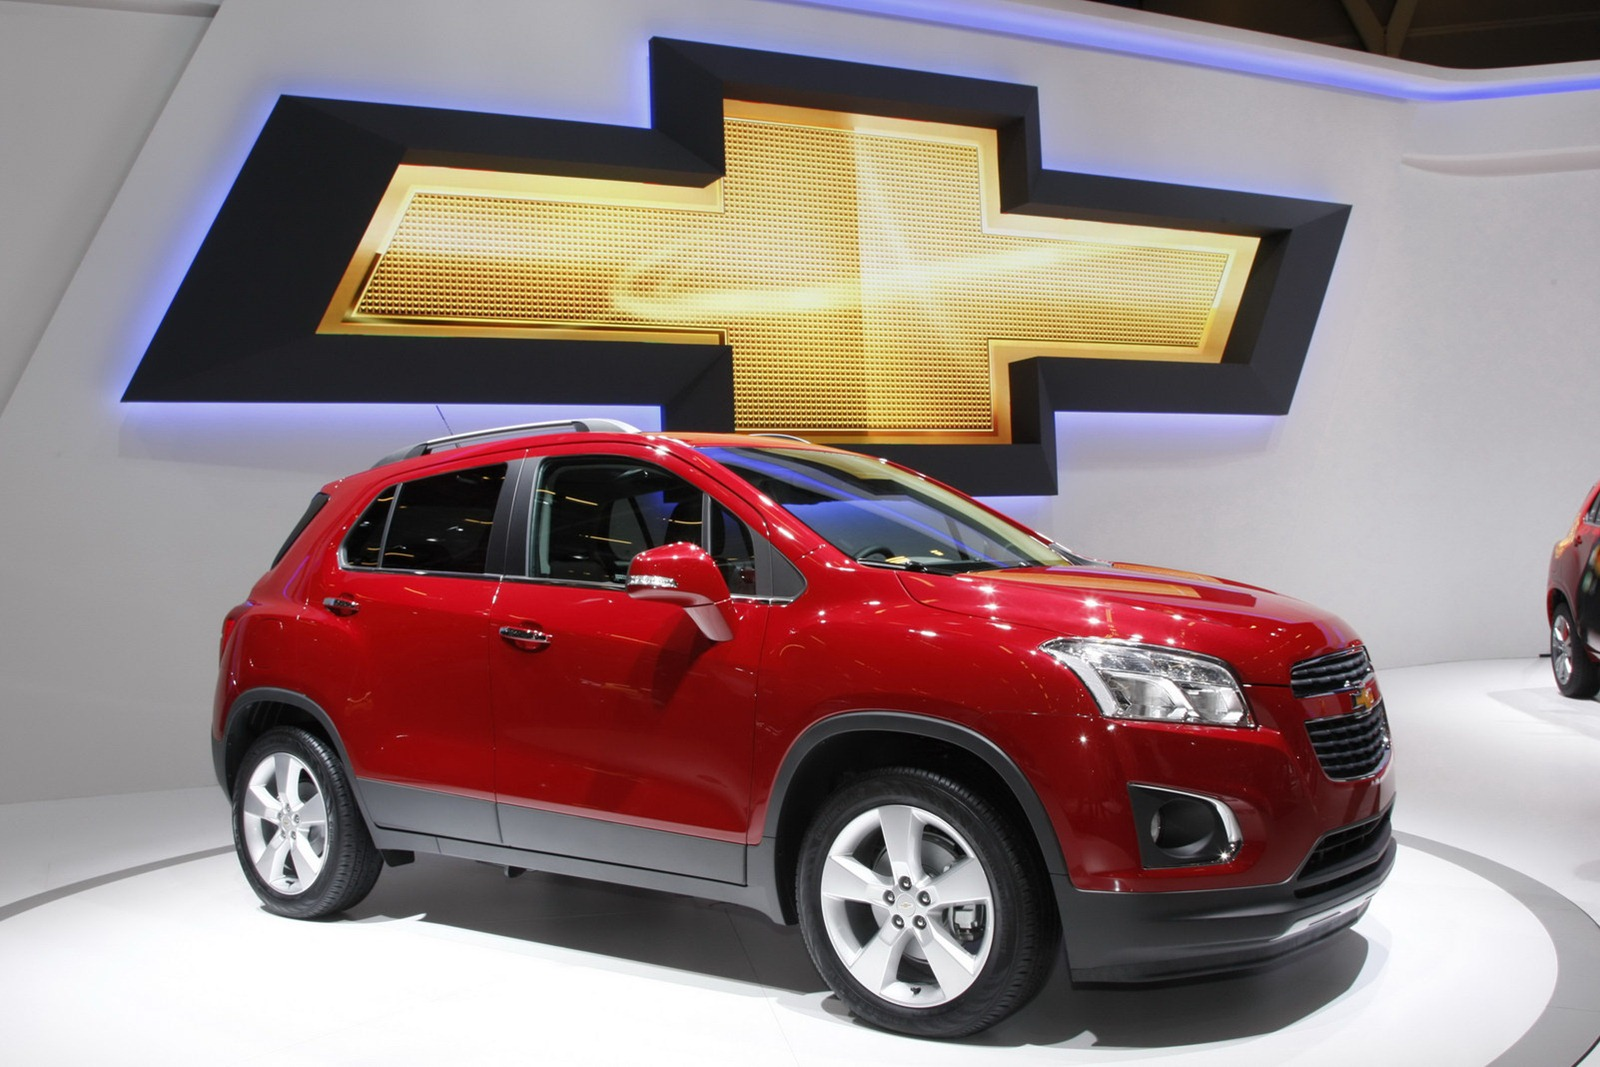 Gm To Launch Up To 8 New Models In India